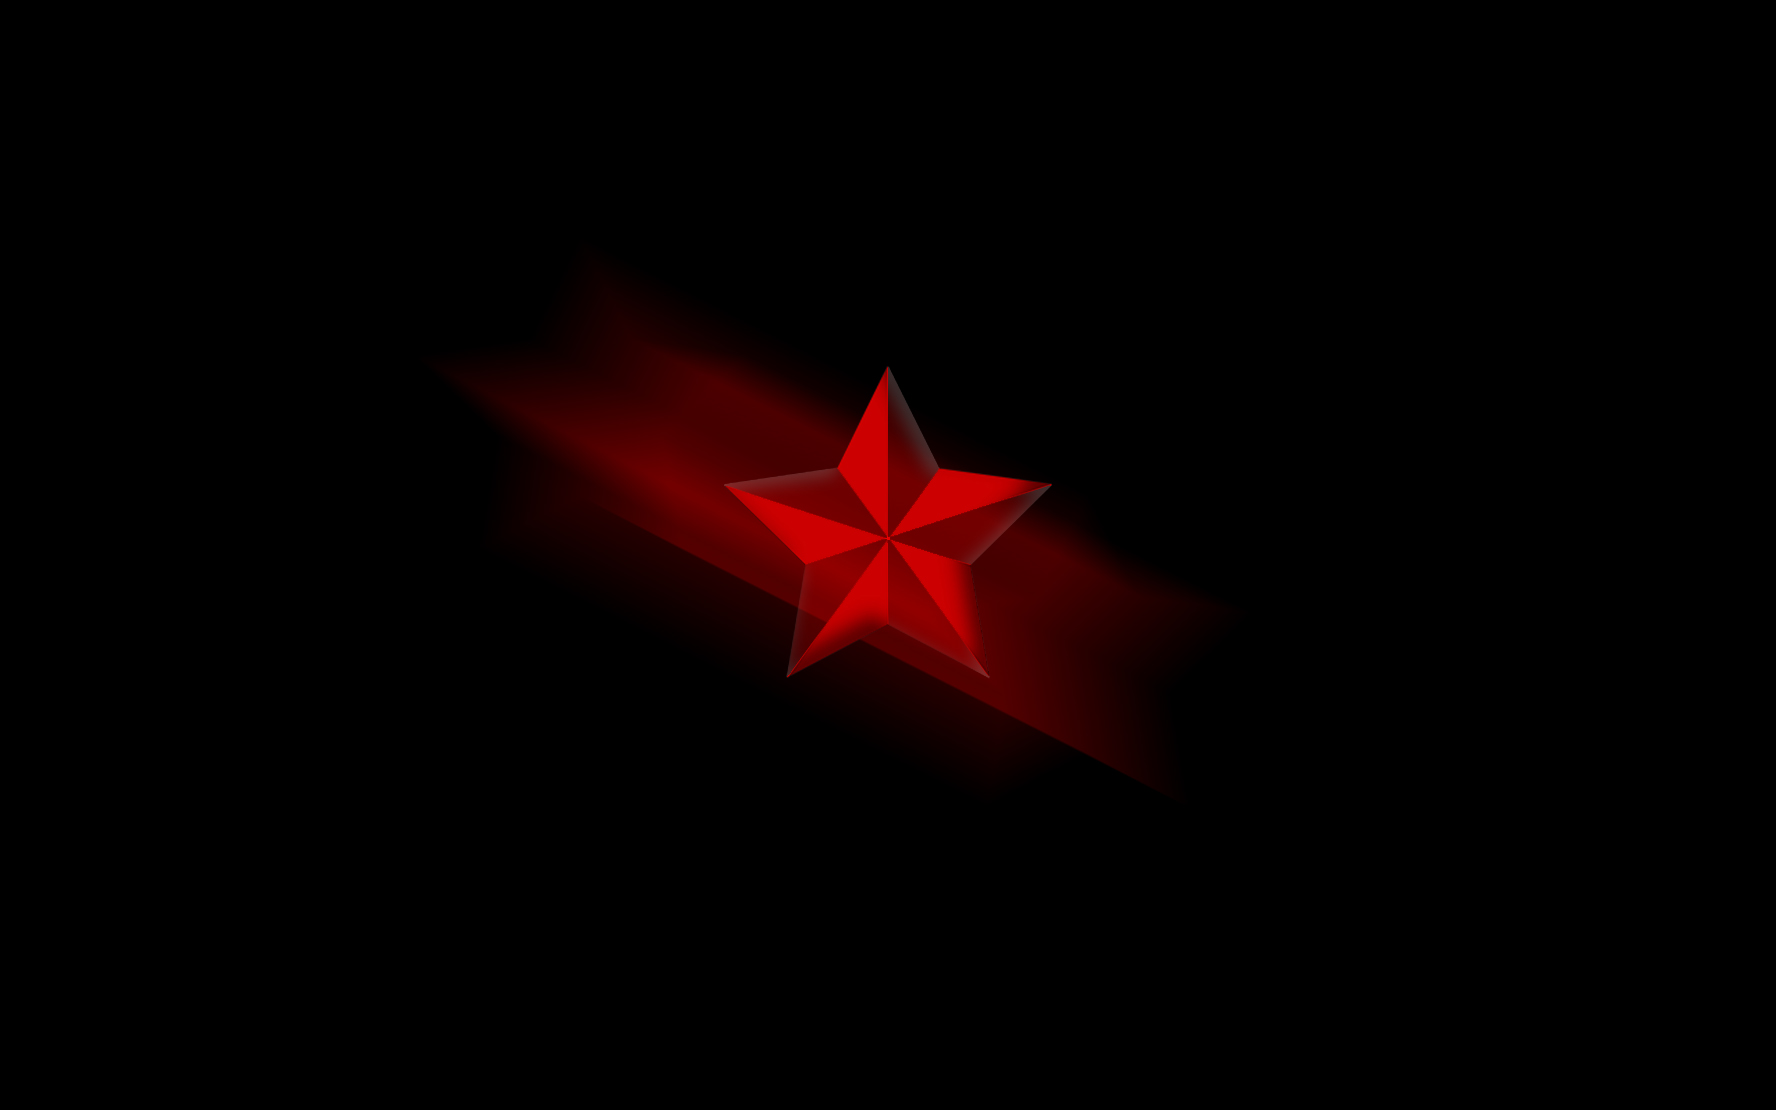 Red Star : Desktop and mobile wallpaper : Wallippo